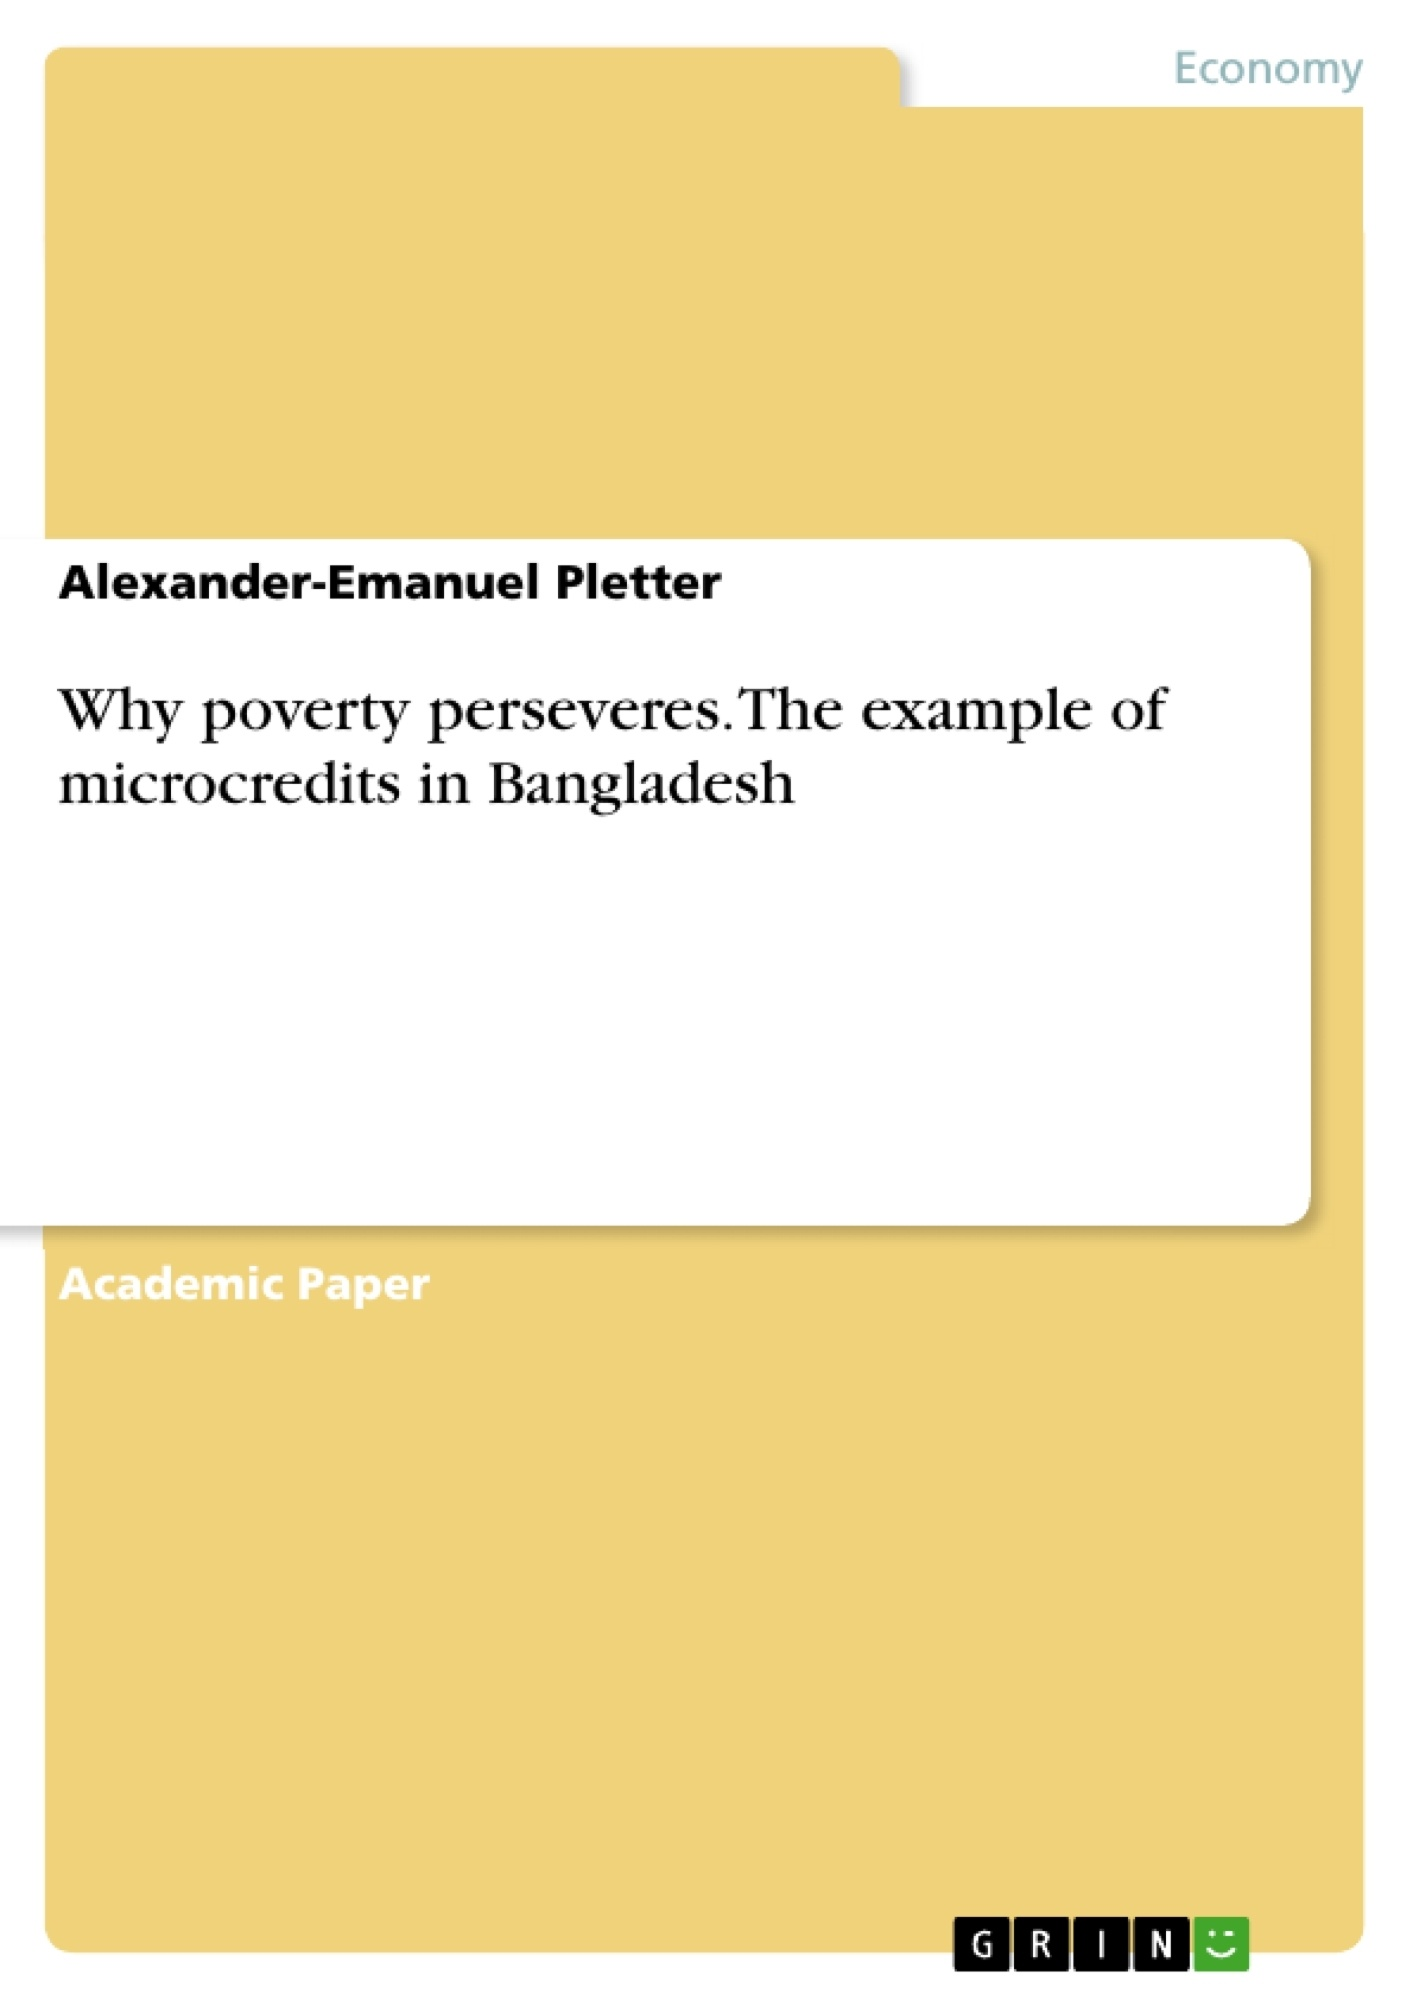 Title: Why poverty perseveres. The example of microcredits in Bangladesh